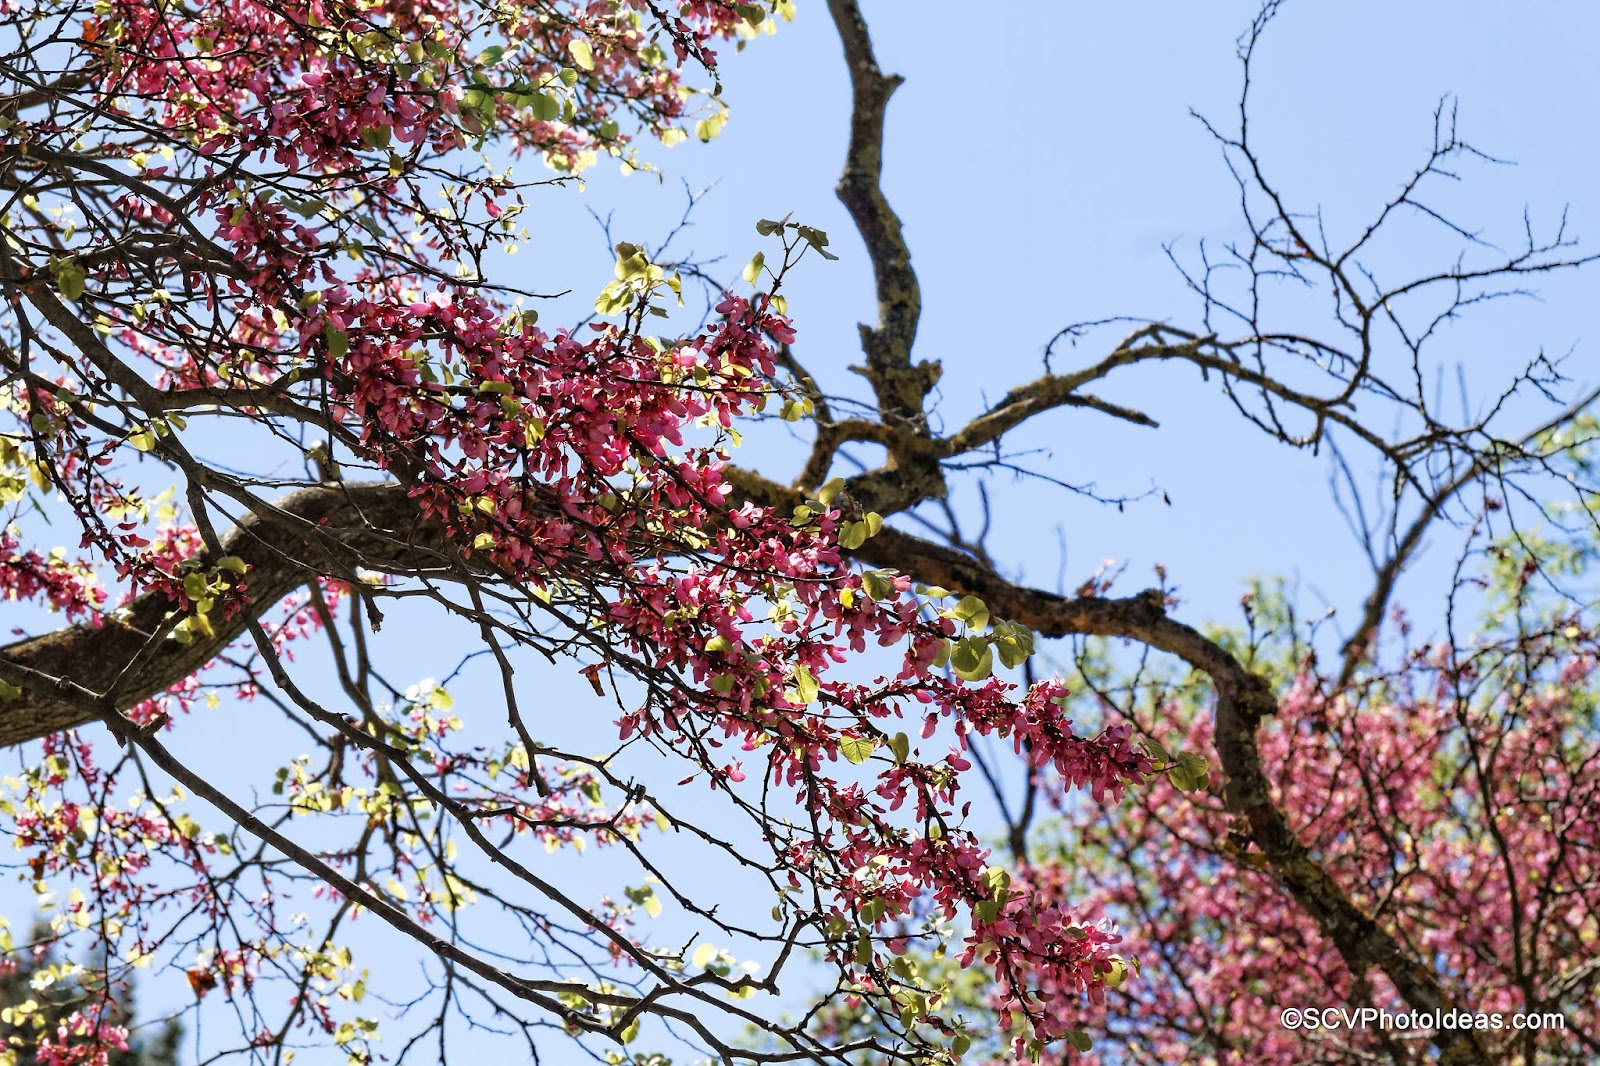 Blossoming Almond Tree branch detail